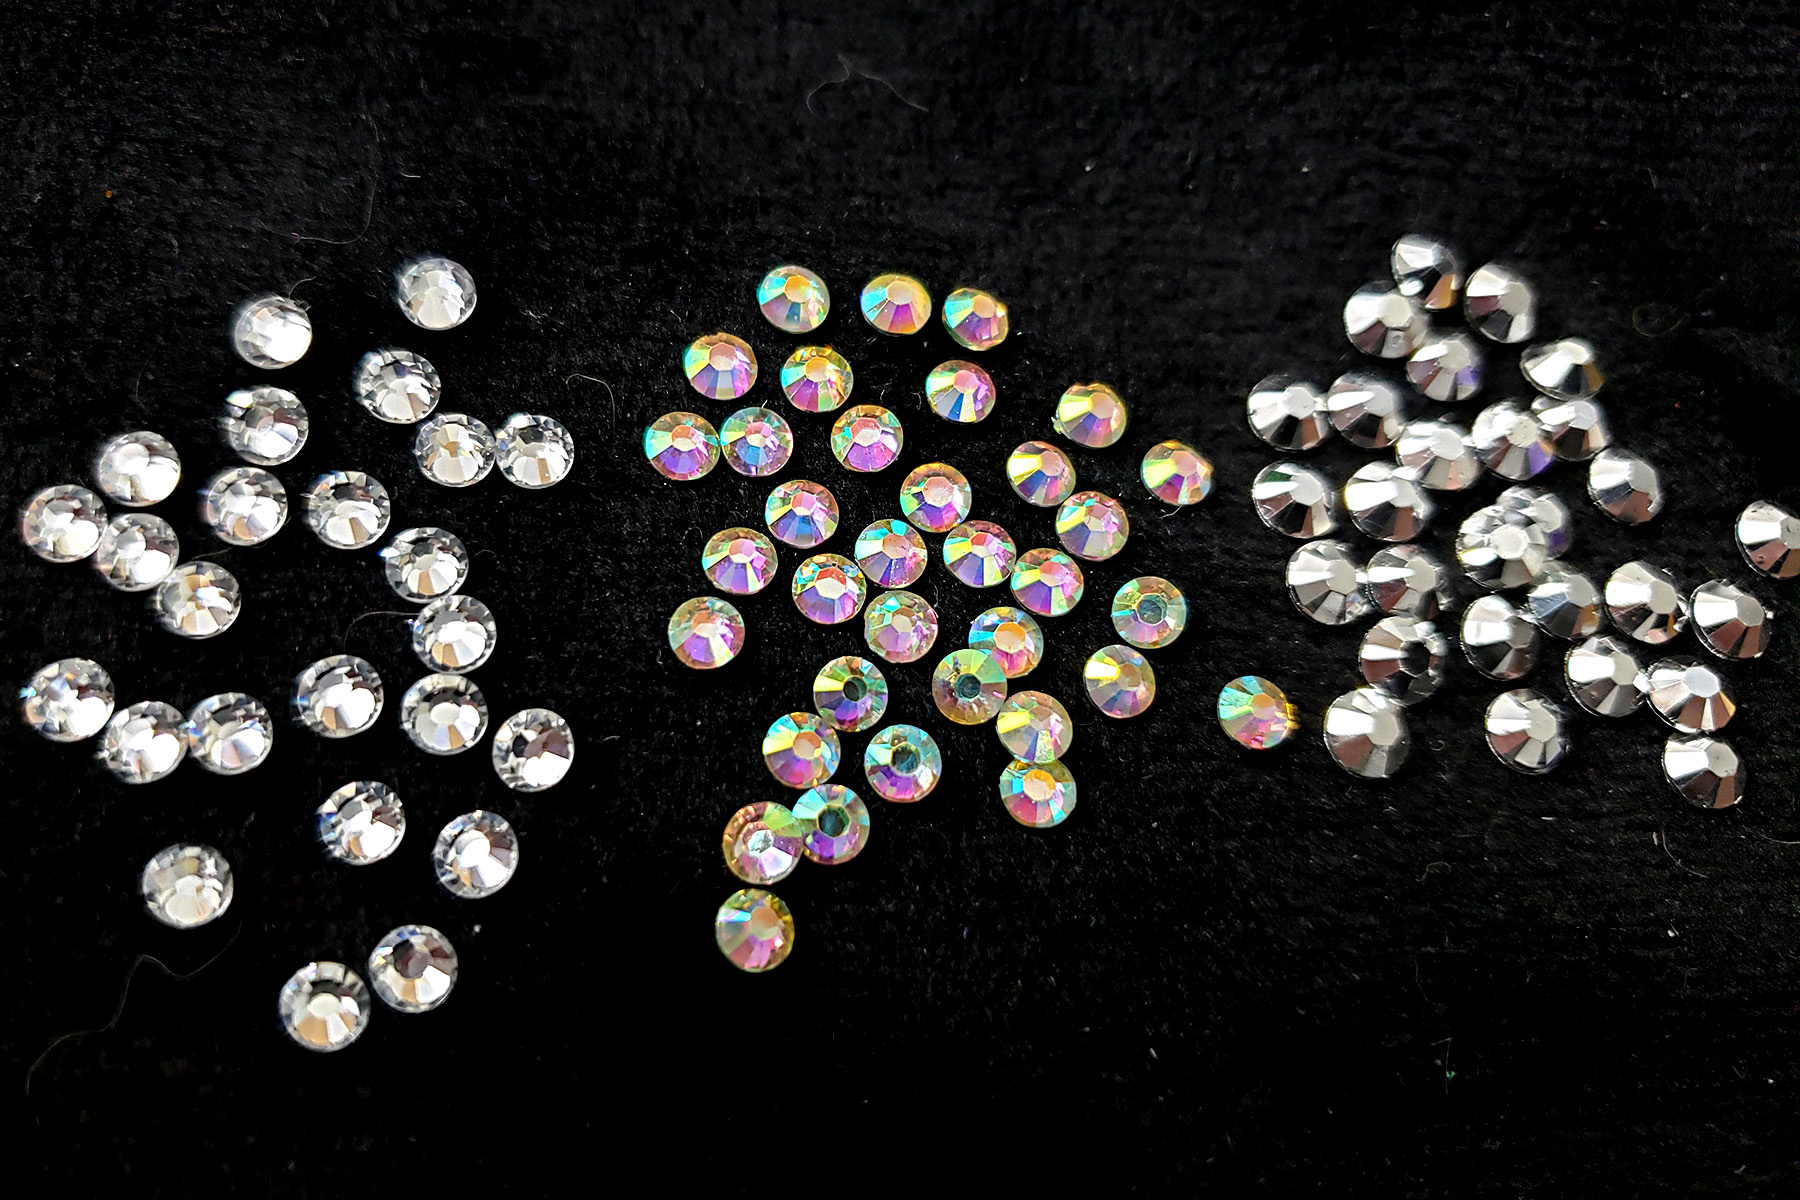 A side by side comparison of clear, AB, and metallic finished rhinestones, against a black background.